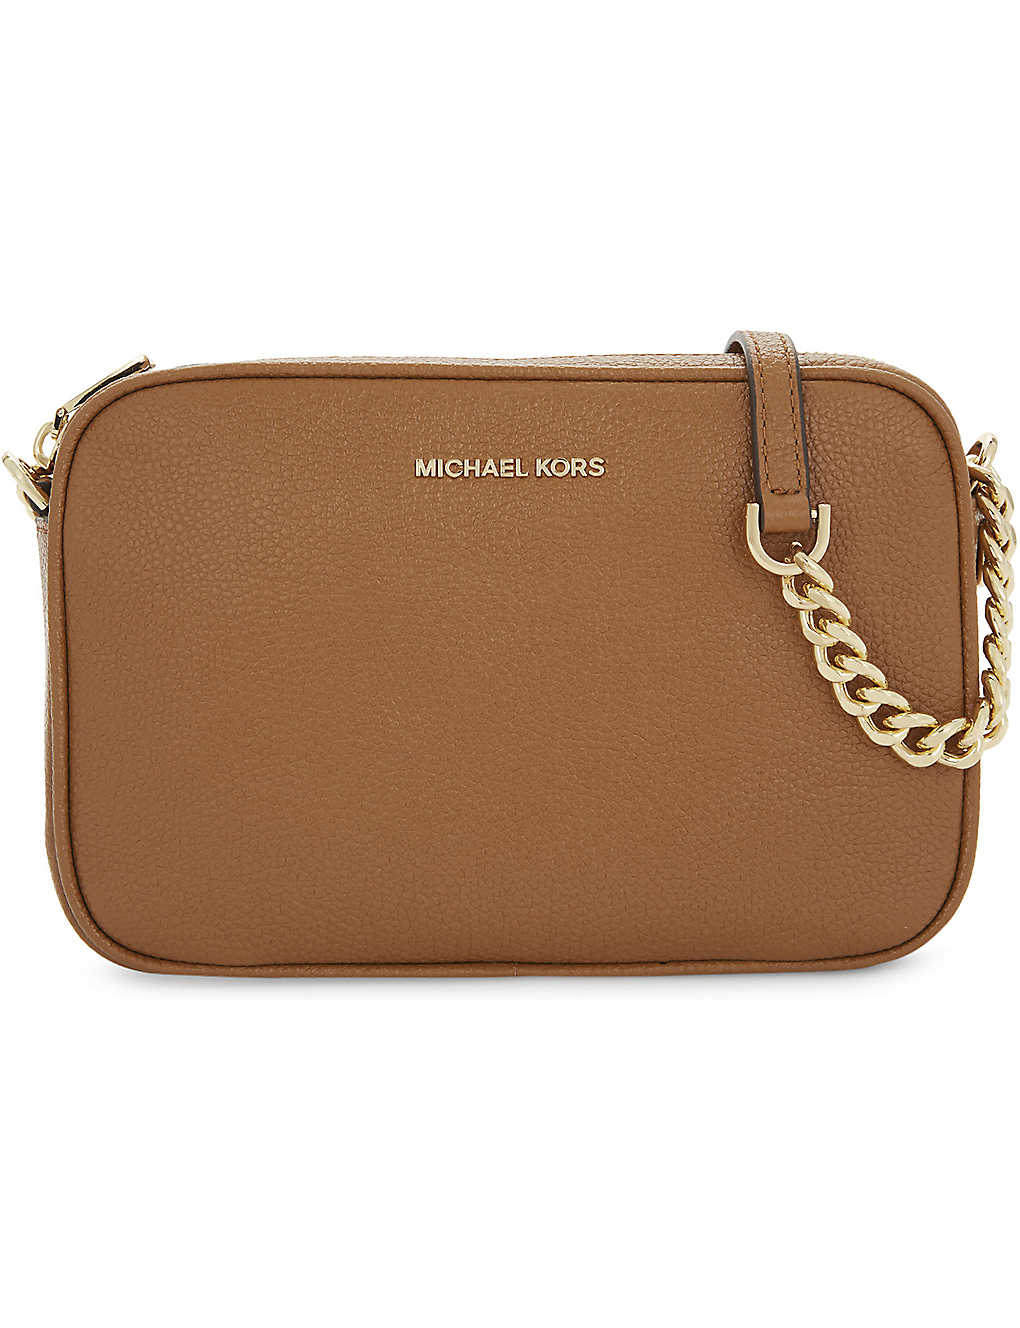 0cadebcb0ef66d MICHAEL MICHAEL KORS - Ginny leather cross-body bag | Selfridges.com